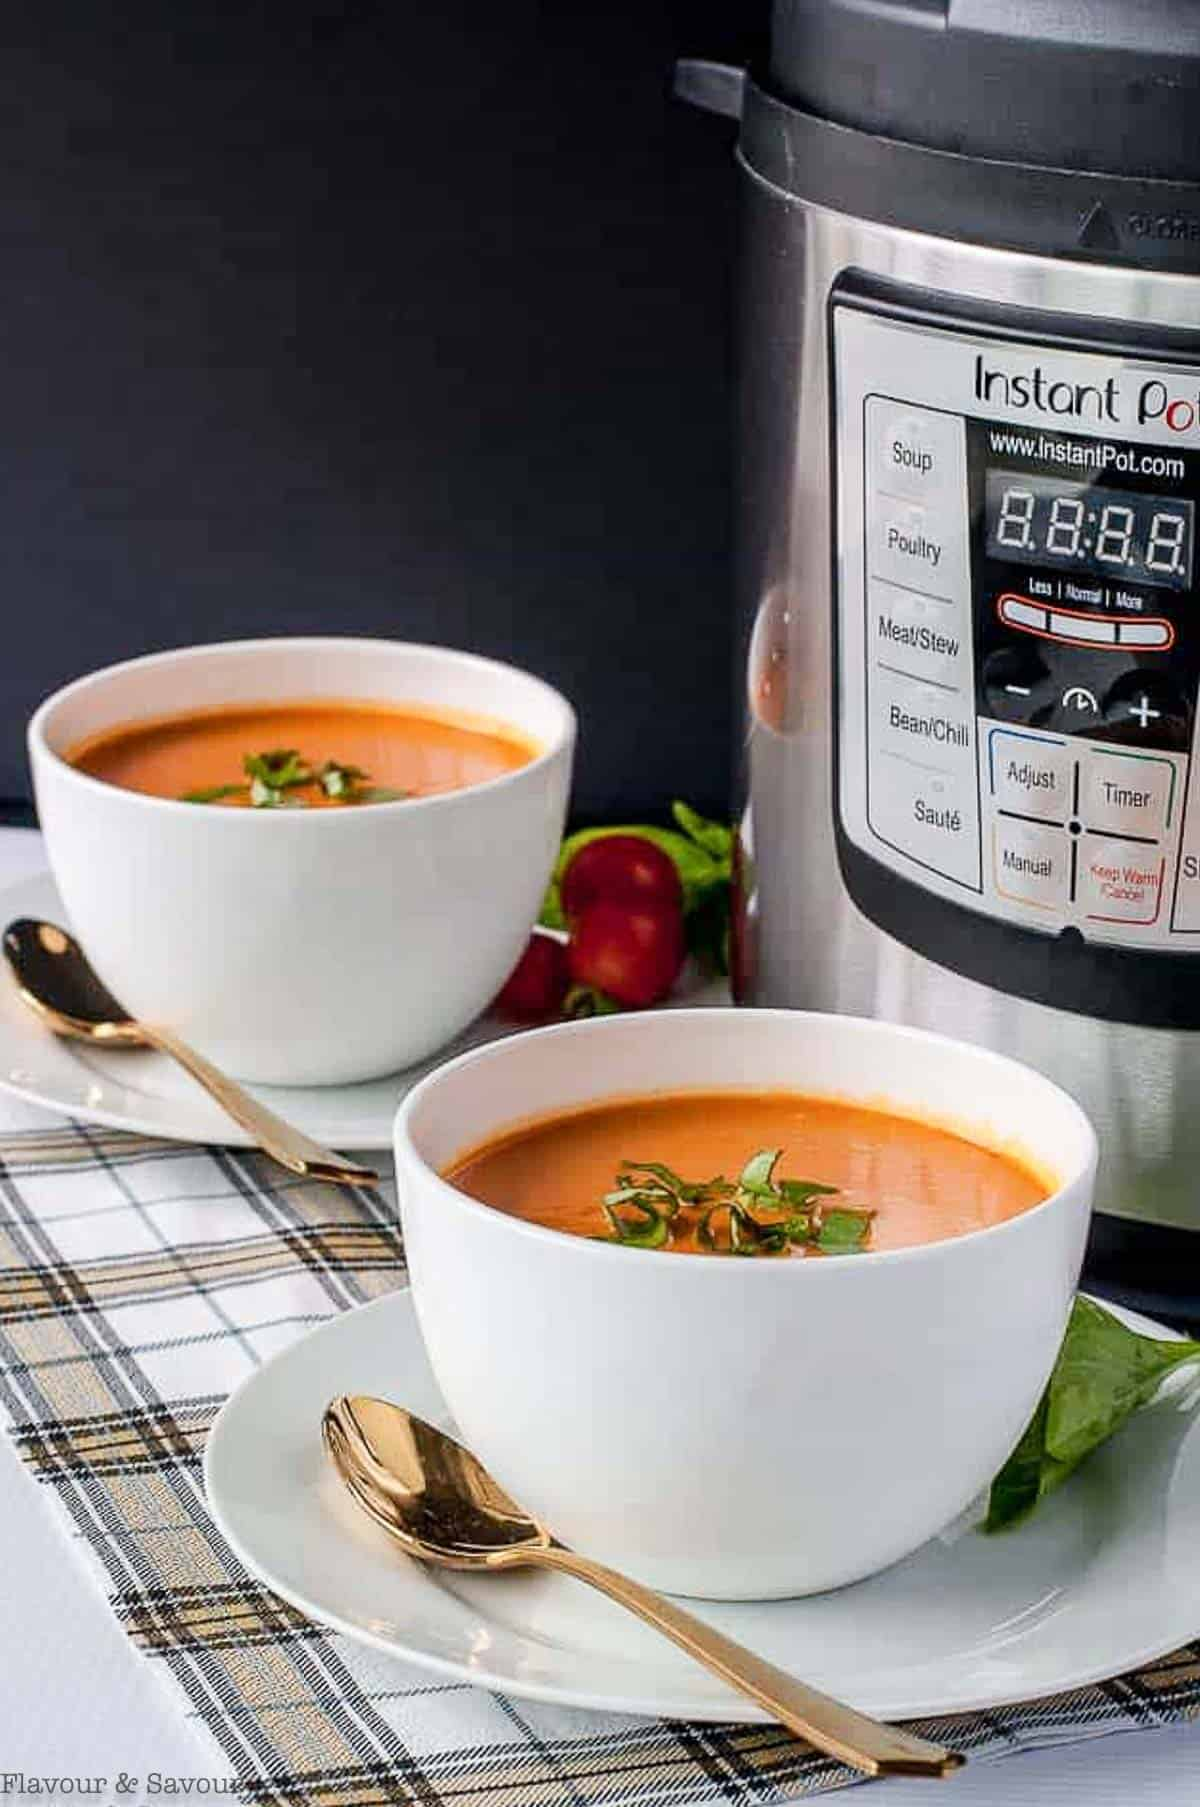 Two bowls of tomato soup beside an Instant Pot